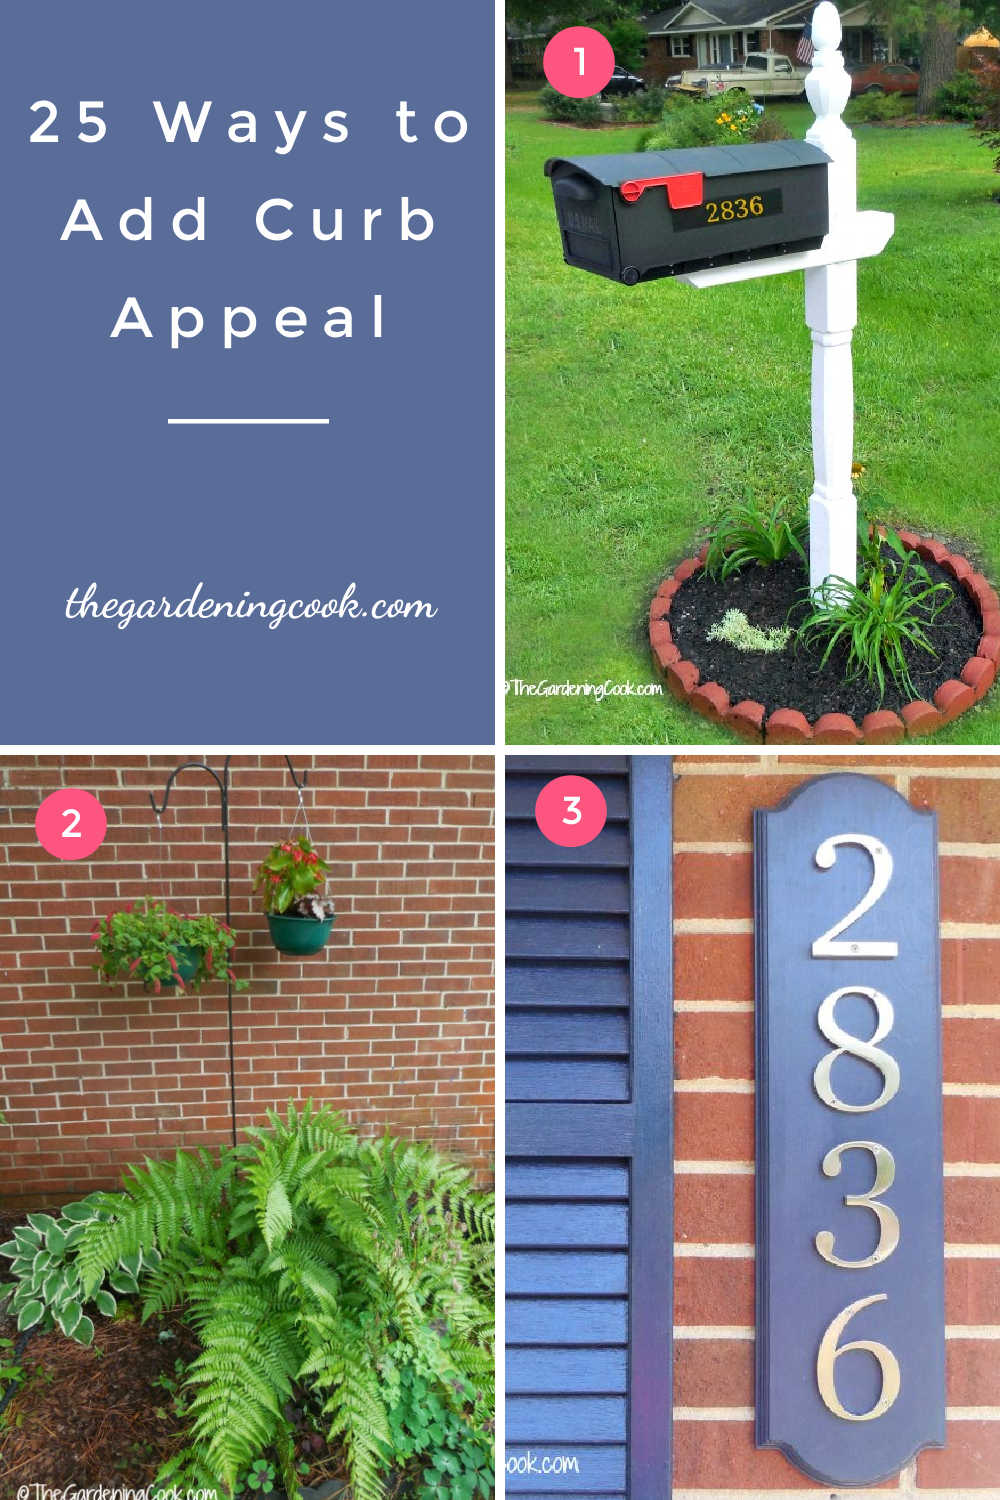 Garden plants, pretty mail box and house numbers with text reading 25 ways to add curb appeal.